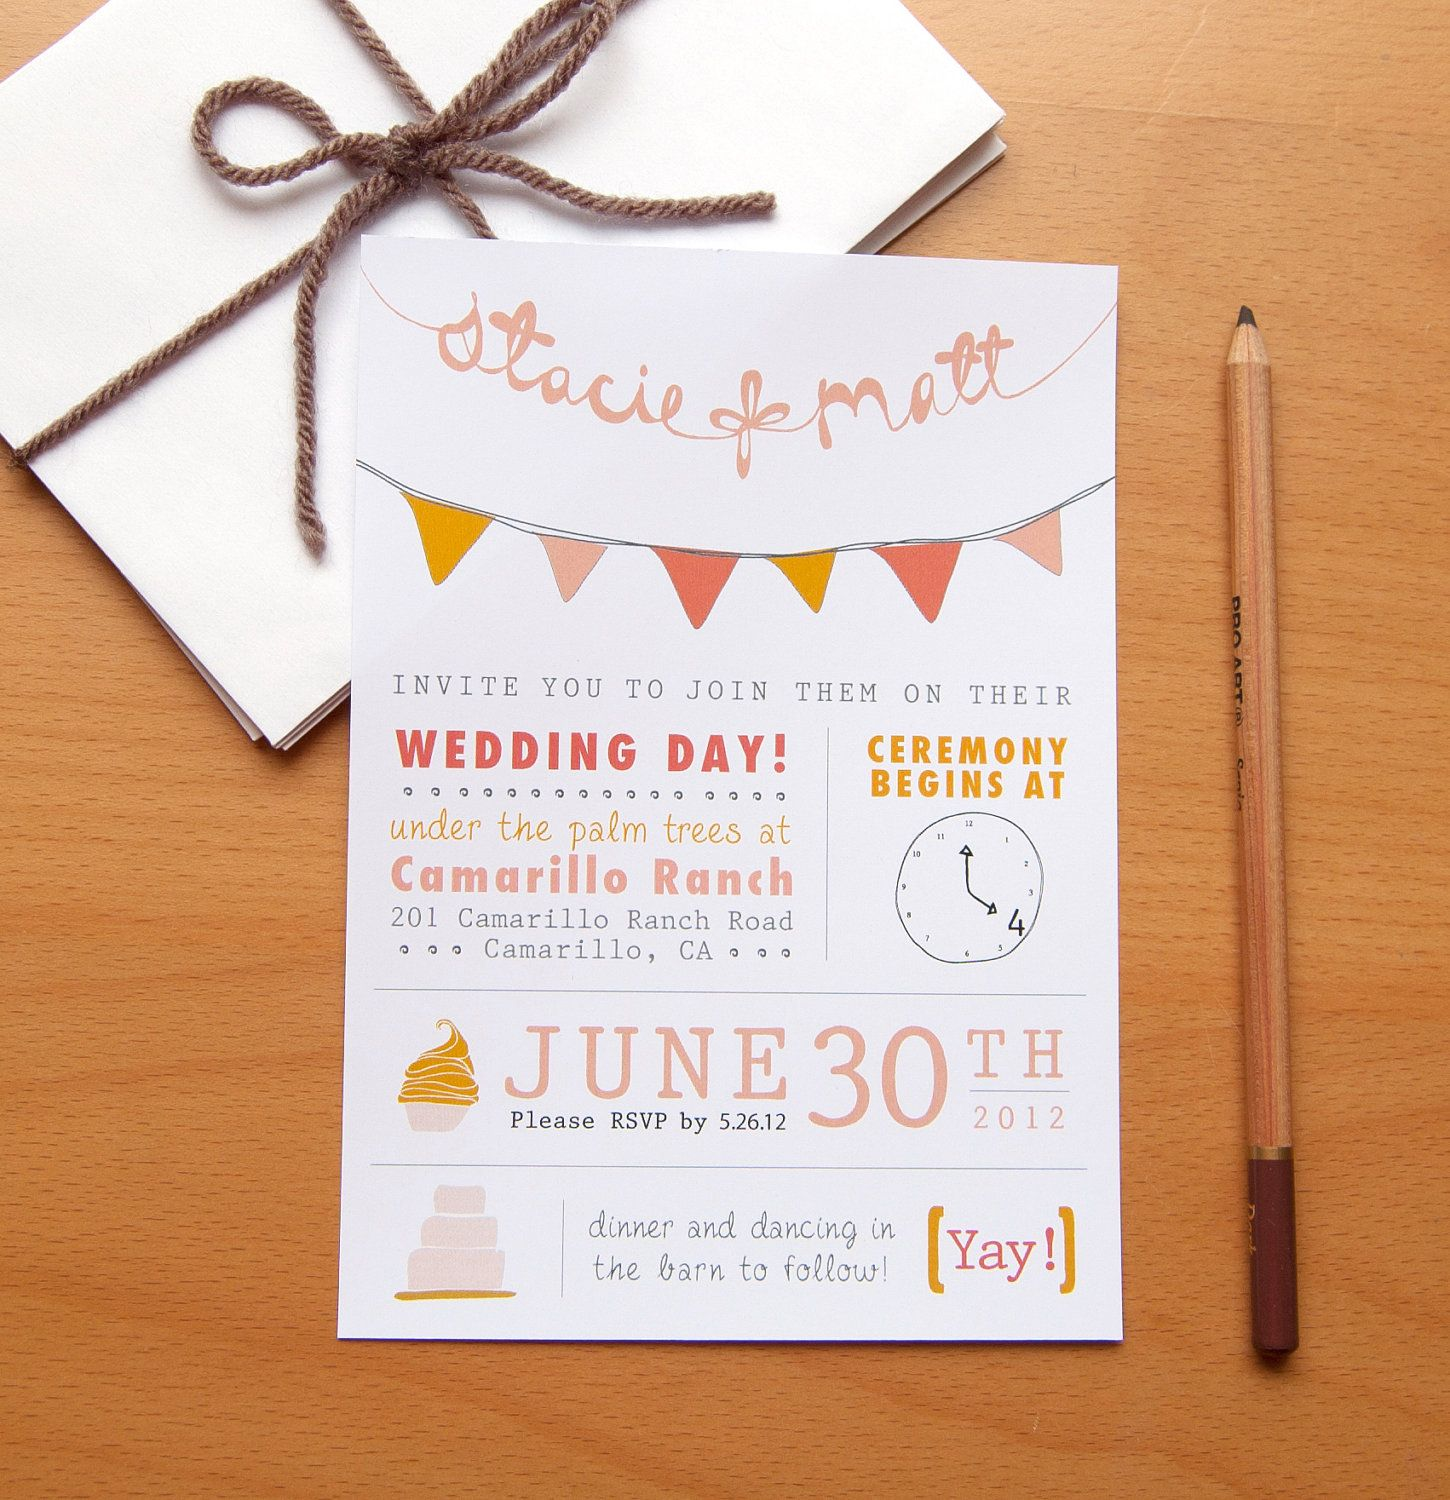 Diy style wedding invitation with bunting pennant flags